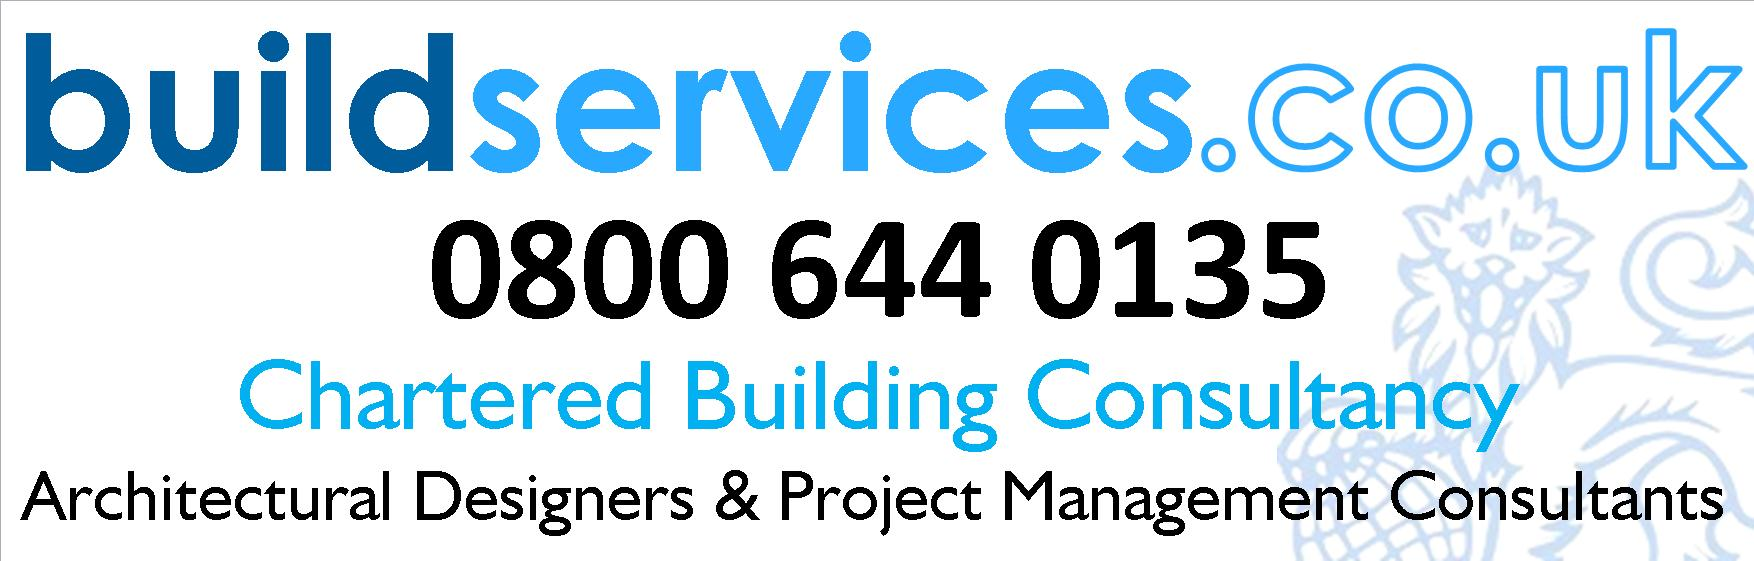 Chartered Building Consultancy - Reigate, Surrey RH2 8HA - 01737 233660 | ShowMeLocal.com